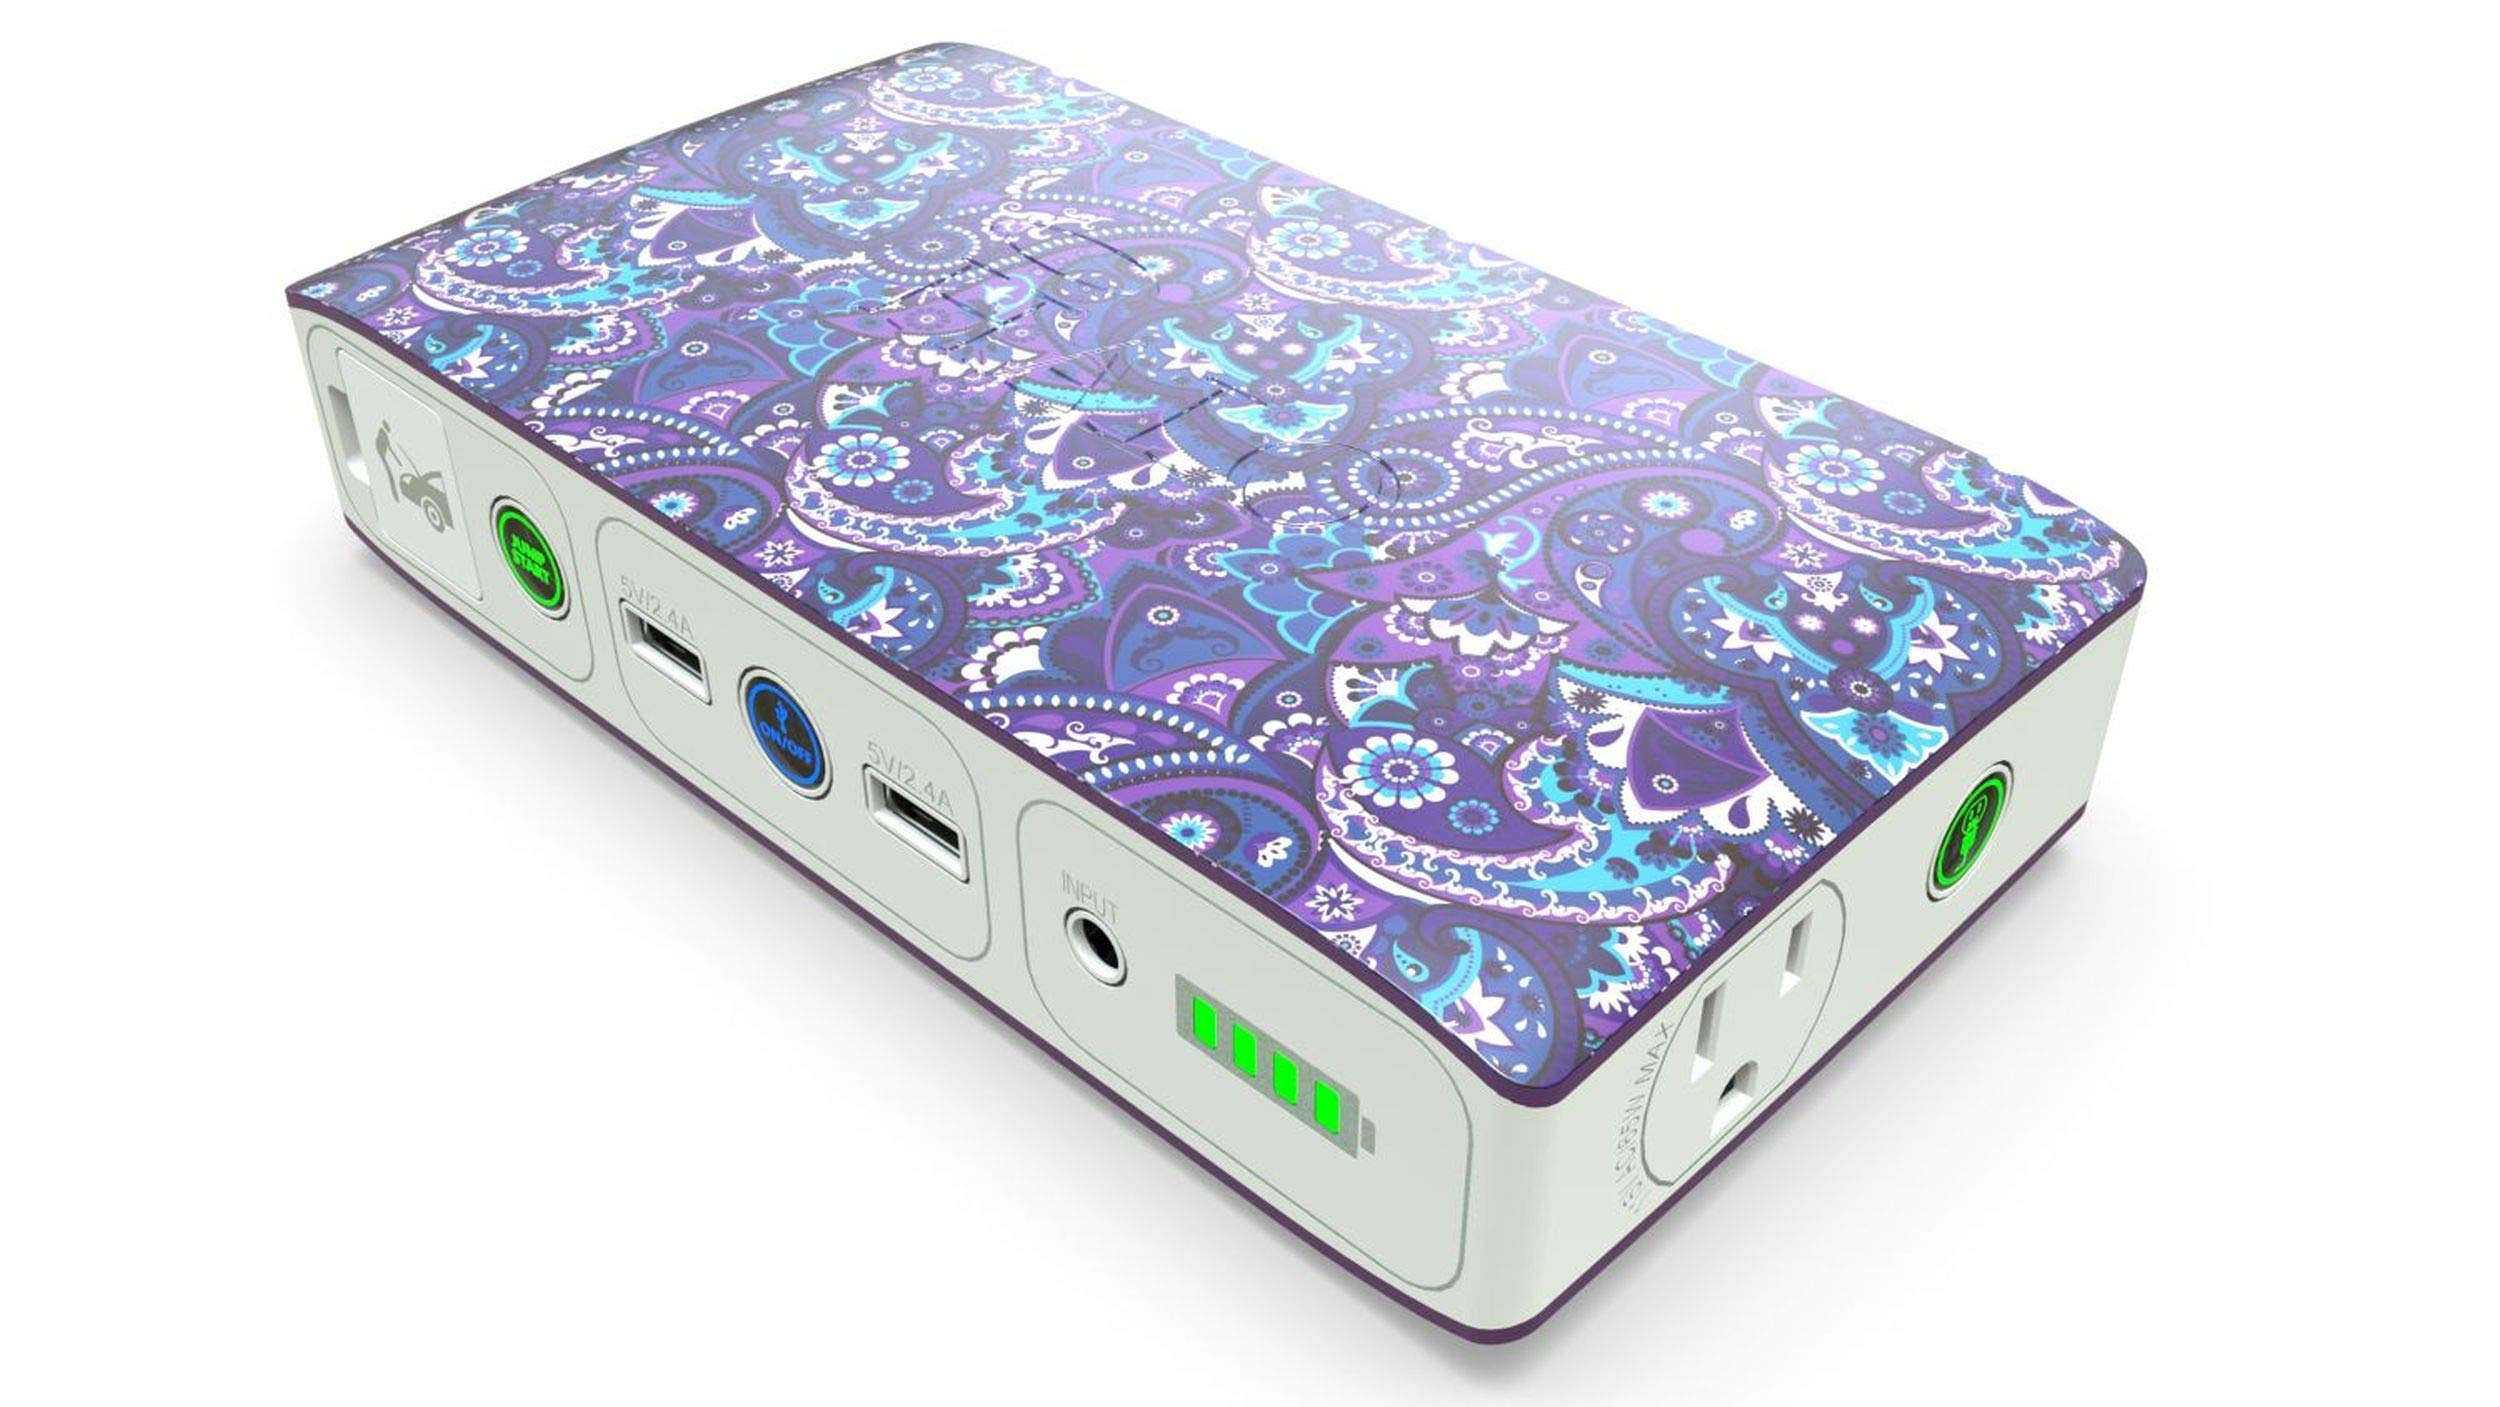 HALO Bolt 58830 mWh Portable Phone Laptop Charger Car Jump Starter with AC Outlet and Car Charger - Violet Paisley